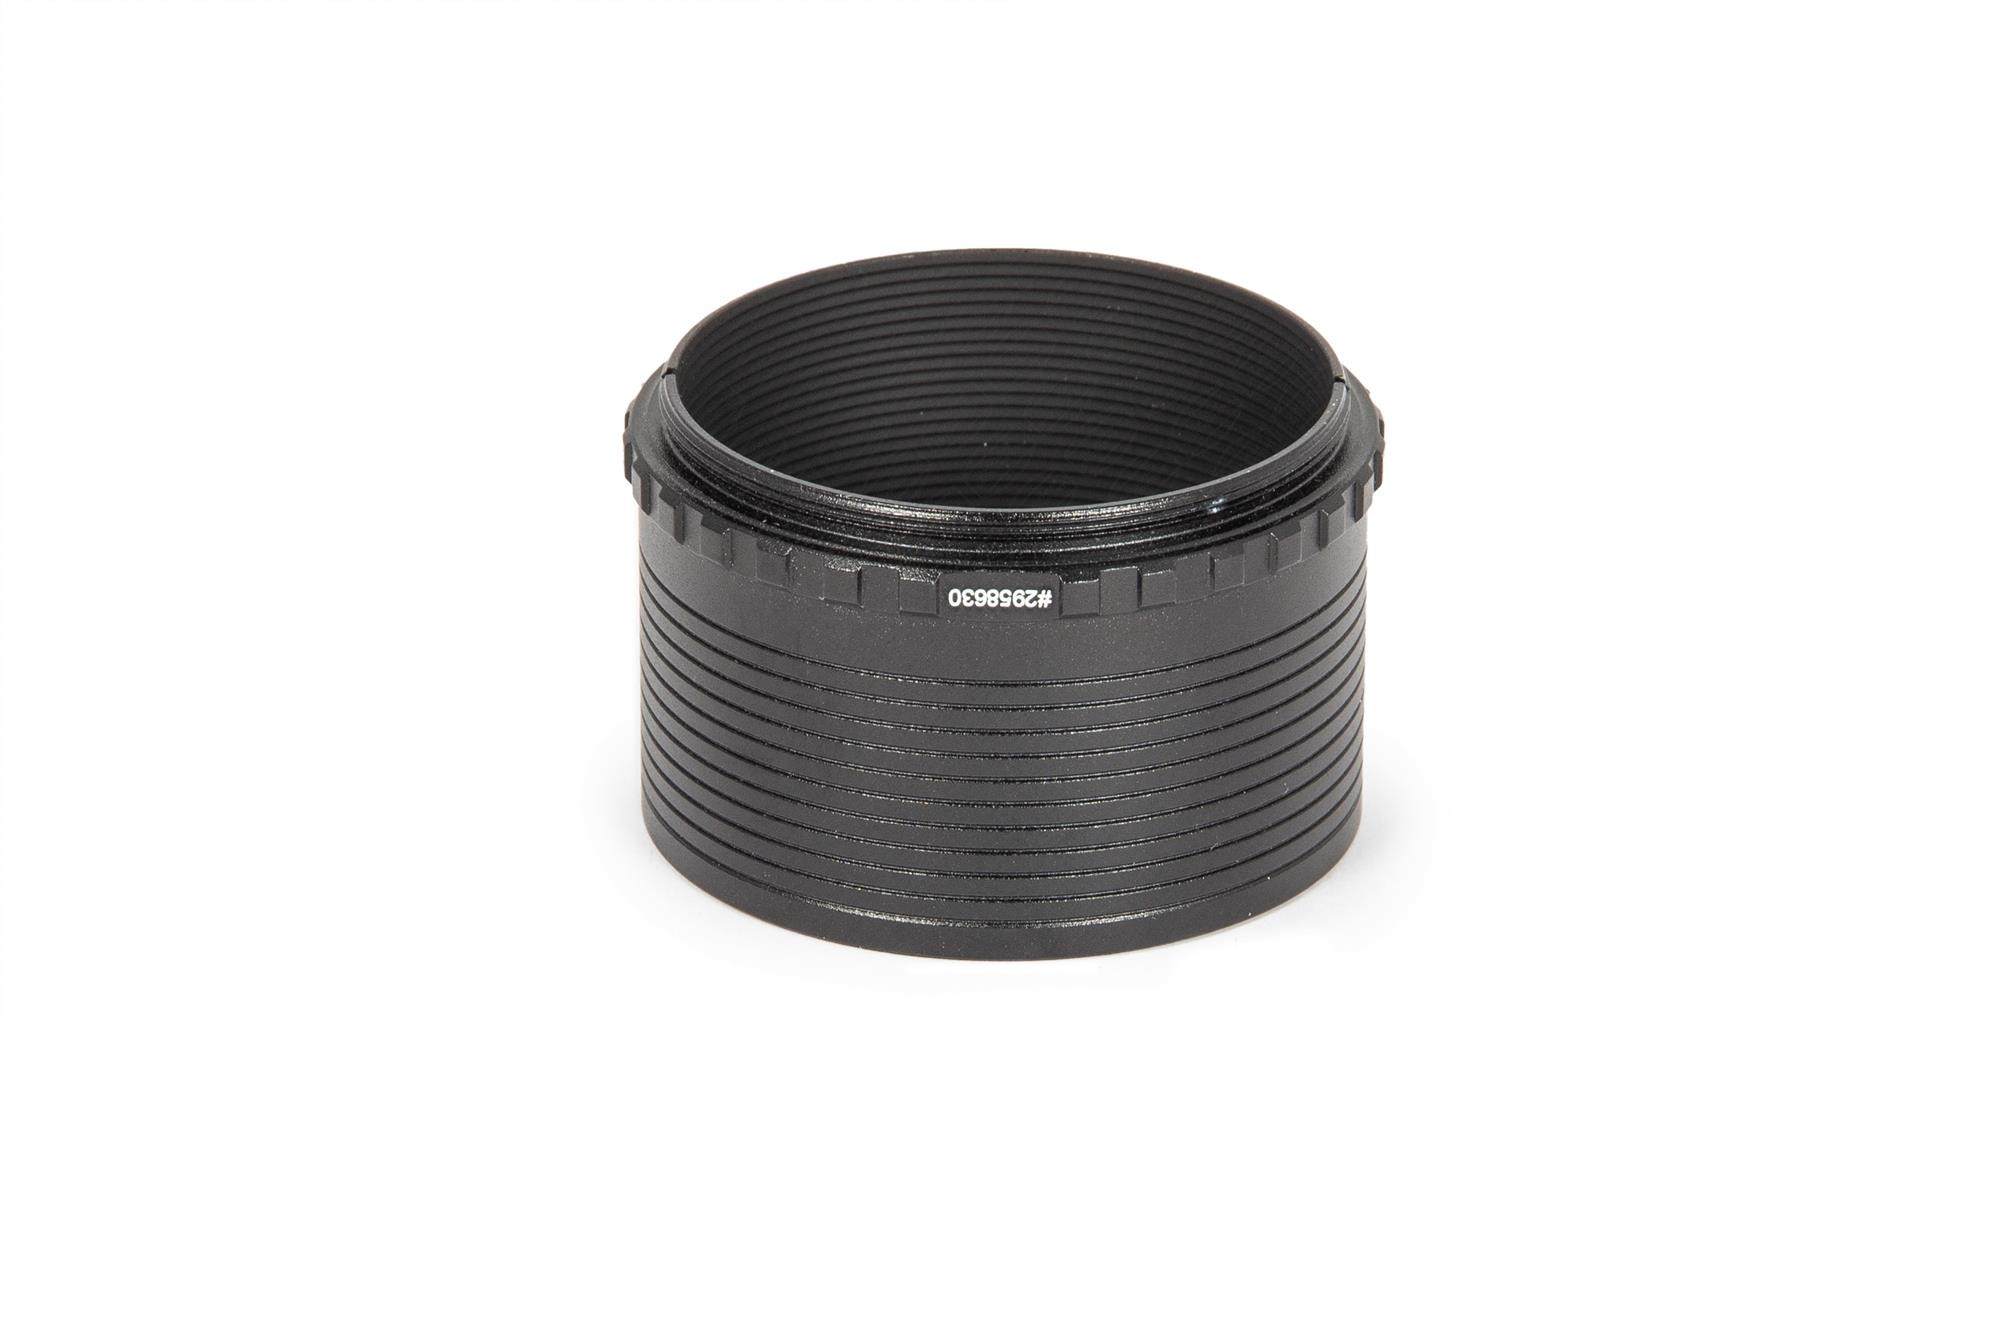 """Baader M48 extension tube 30 mm / 2"""" nosepiece with Safety Kerfs"""